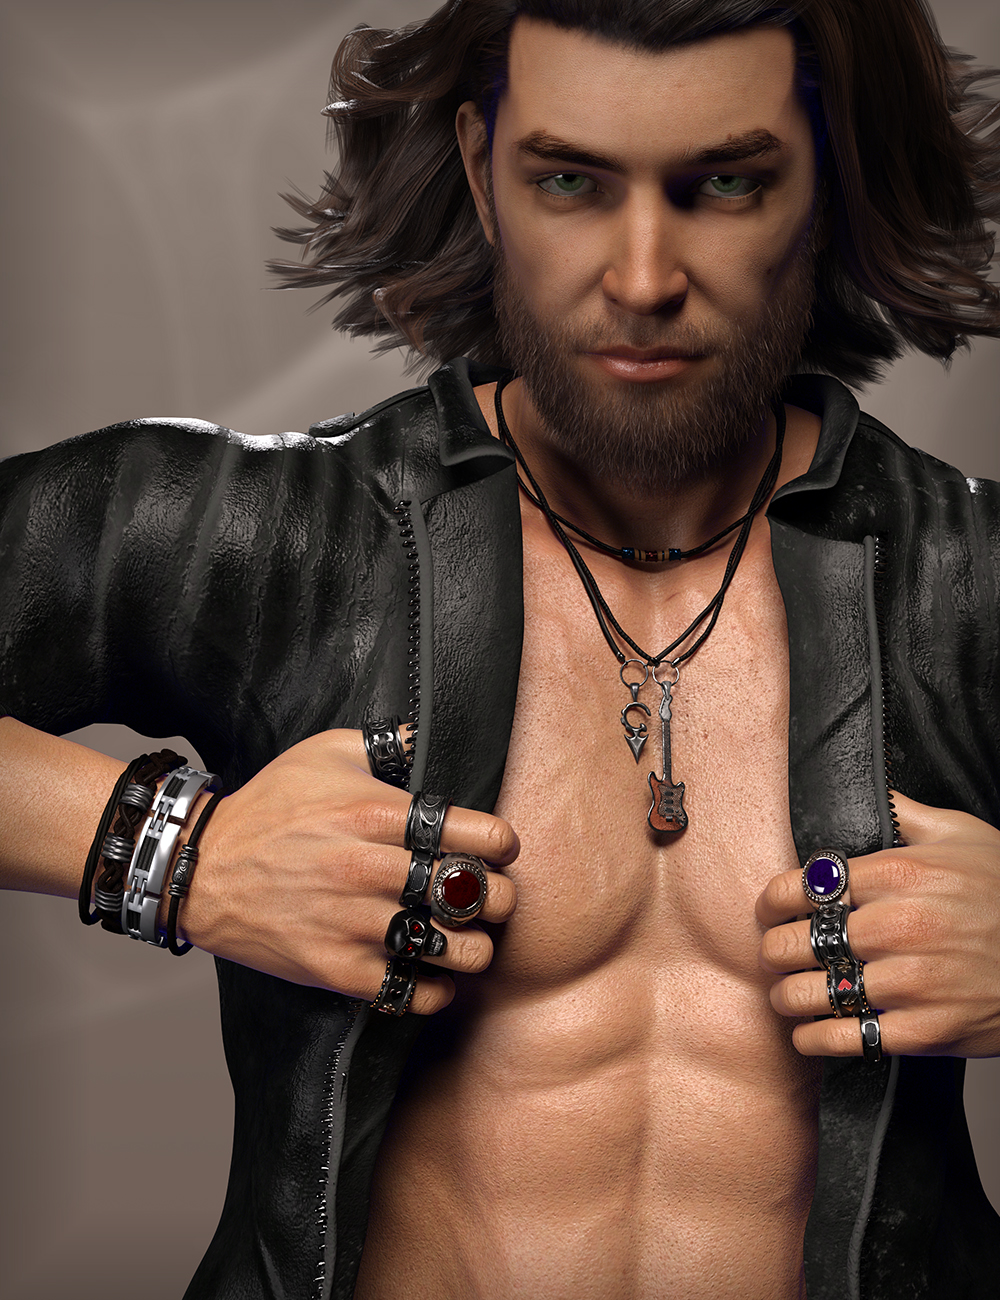 MD Rock Jewelry for Genesis 3 and 8 Male(s) by: MikeD, 3D Models by Daz 3D